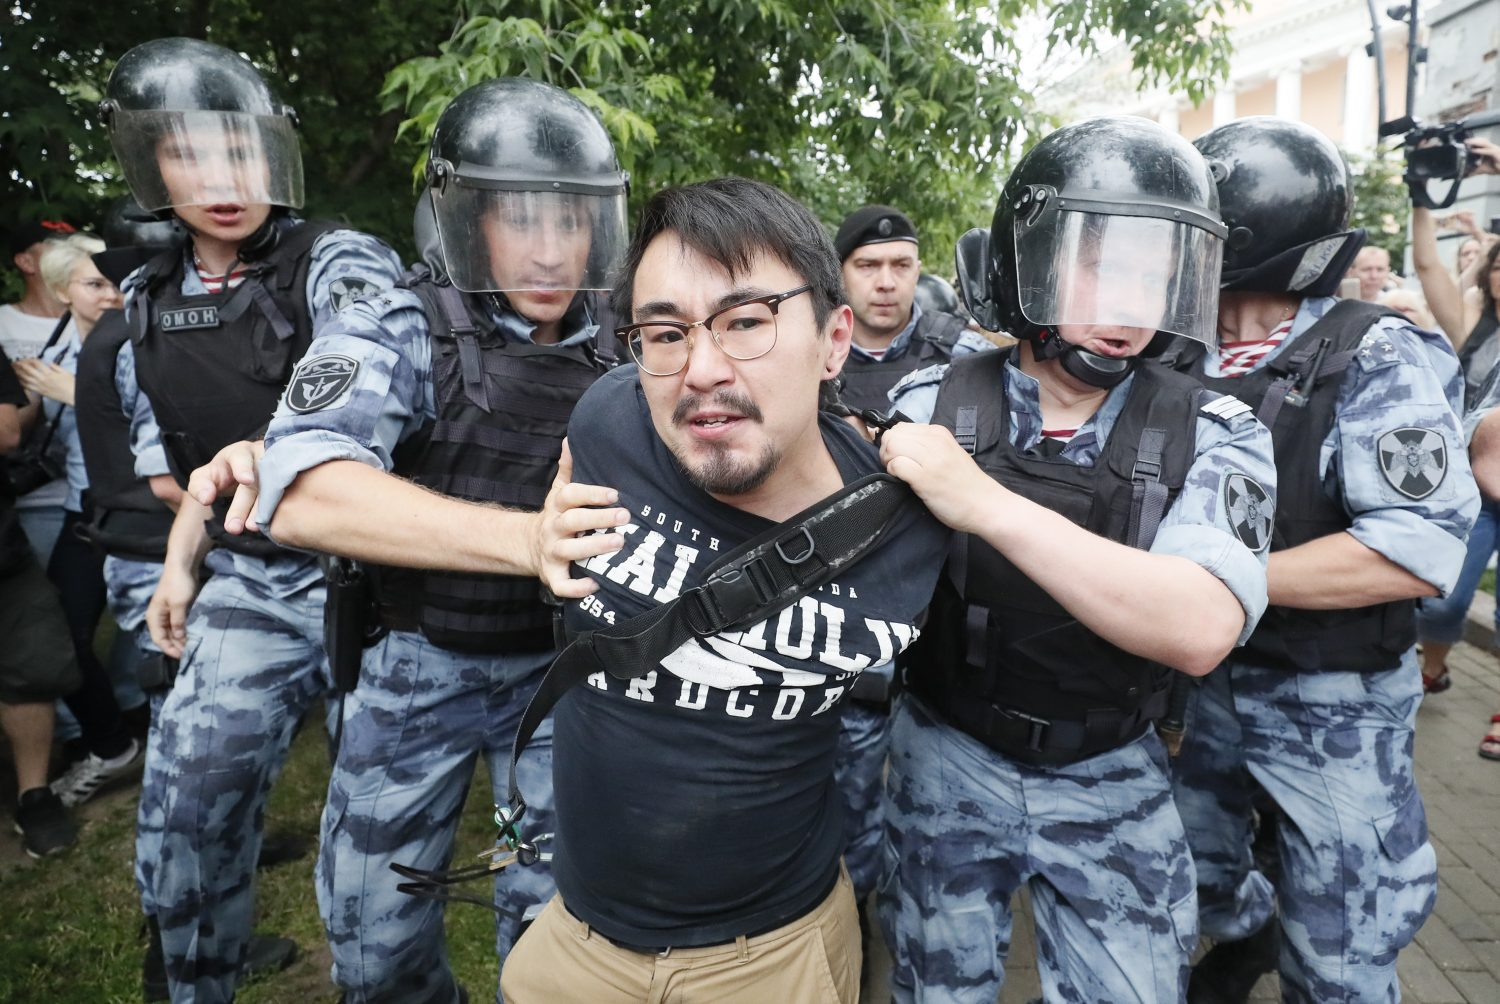 Law enforcement officers detain a participant of a rally in support of Russian investigative journalist Ivan Golunov, who was detained by police, accused of drug offences and later freed from house arrest, in Moscow, Russia June 12, 2019. REUTERS/Shamil Zhumatov